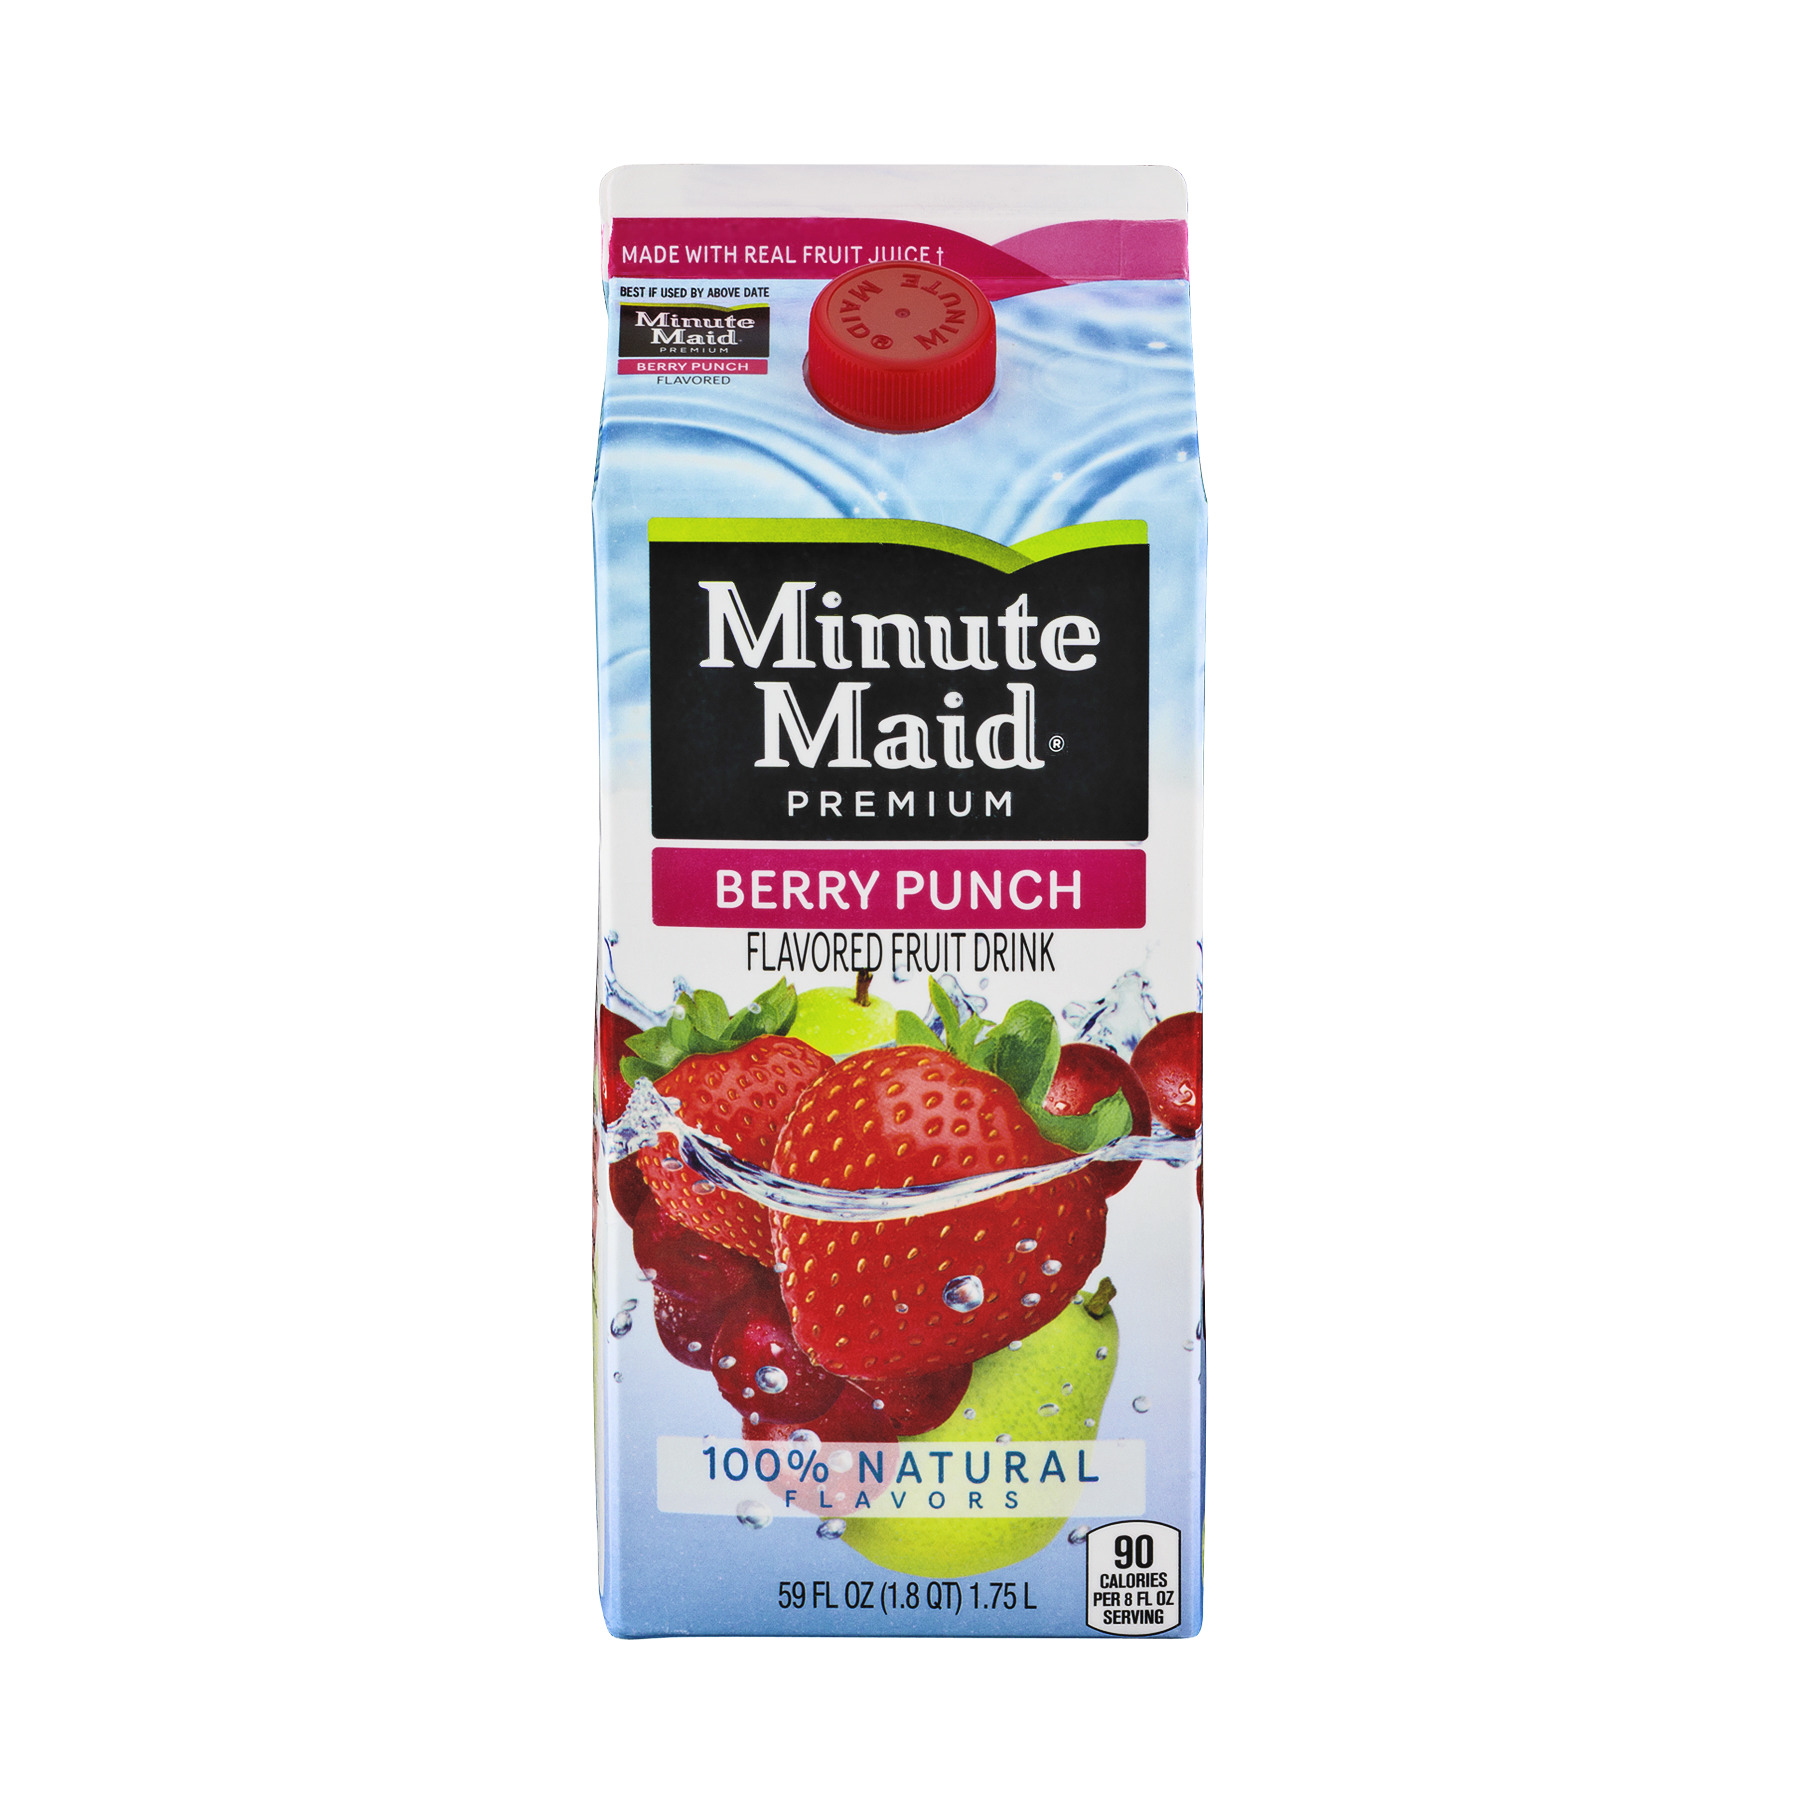 Minute Maid Premium Berry Punch, 59.0 FL OZ